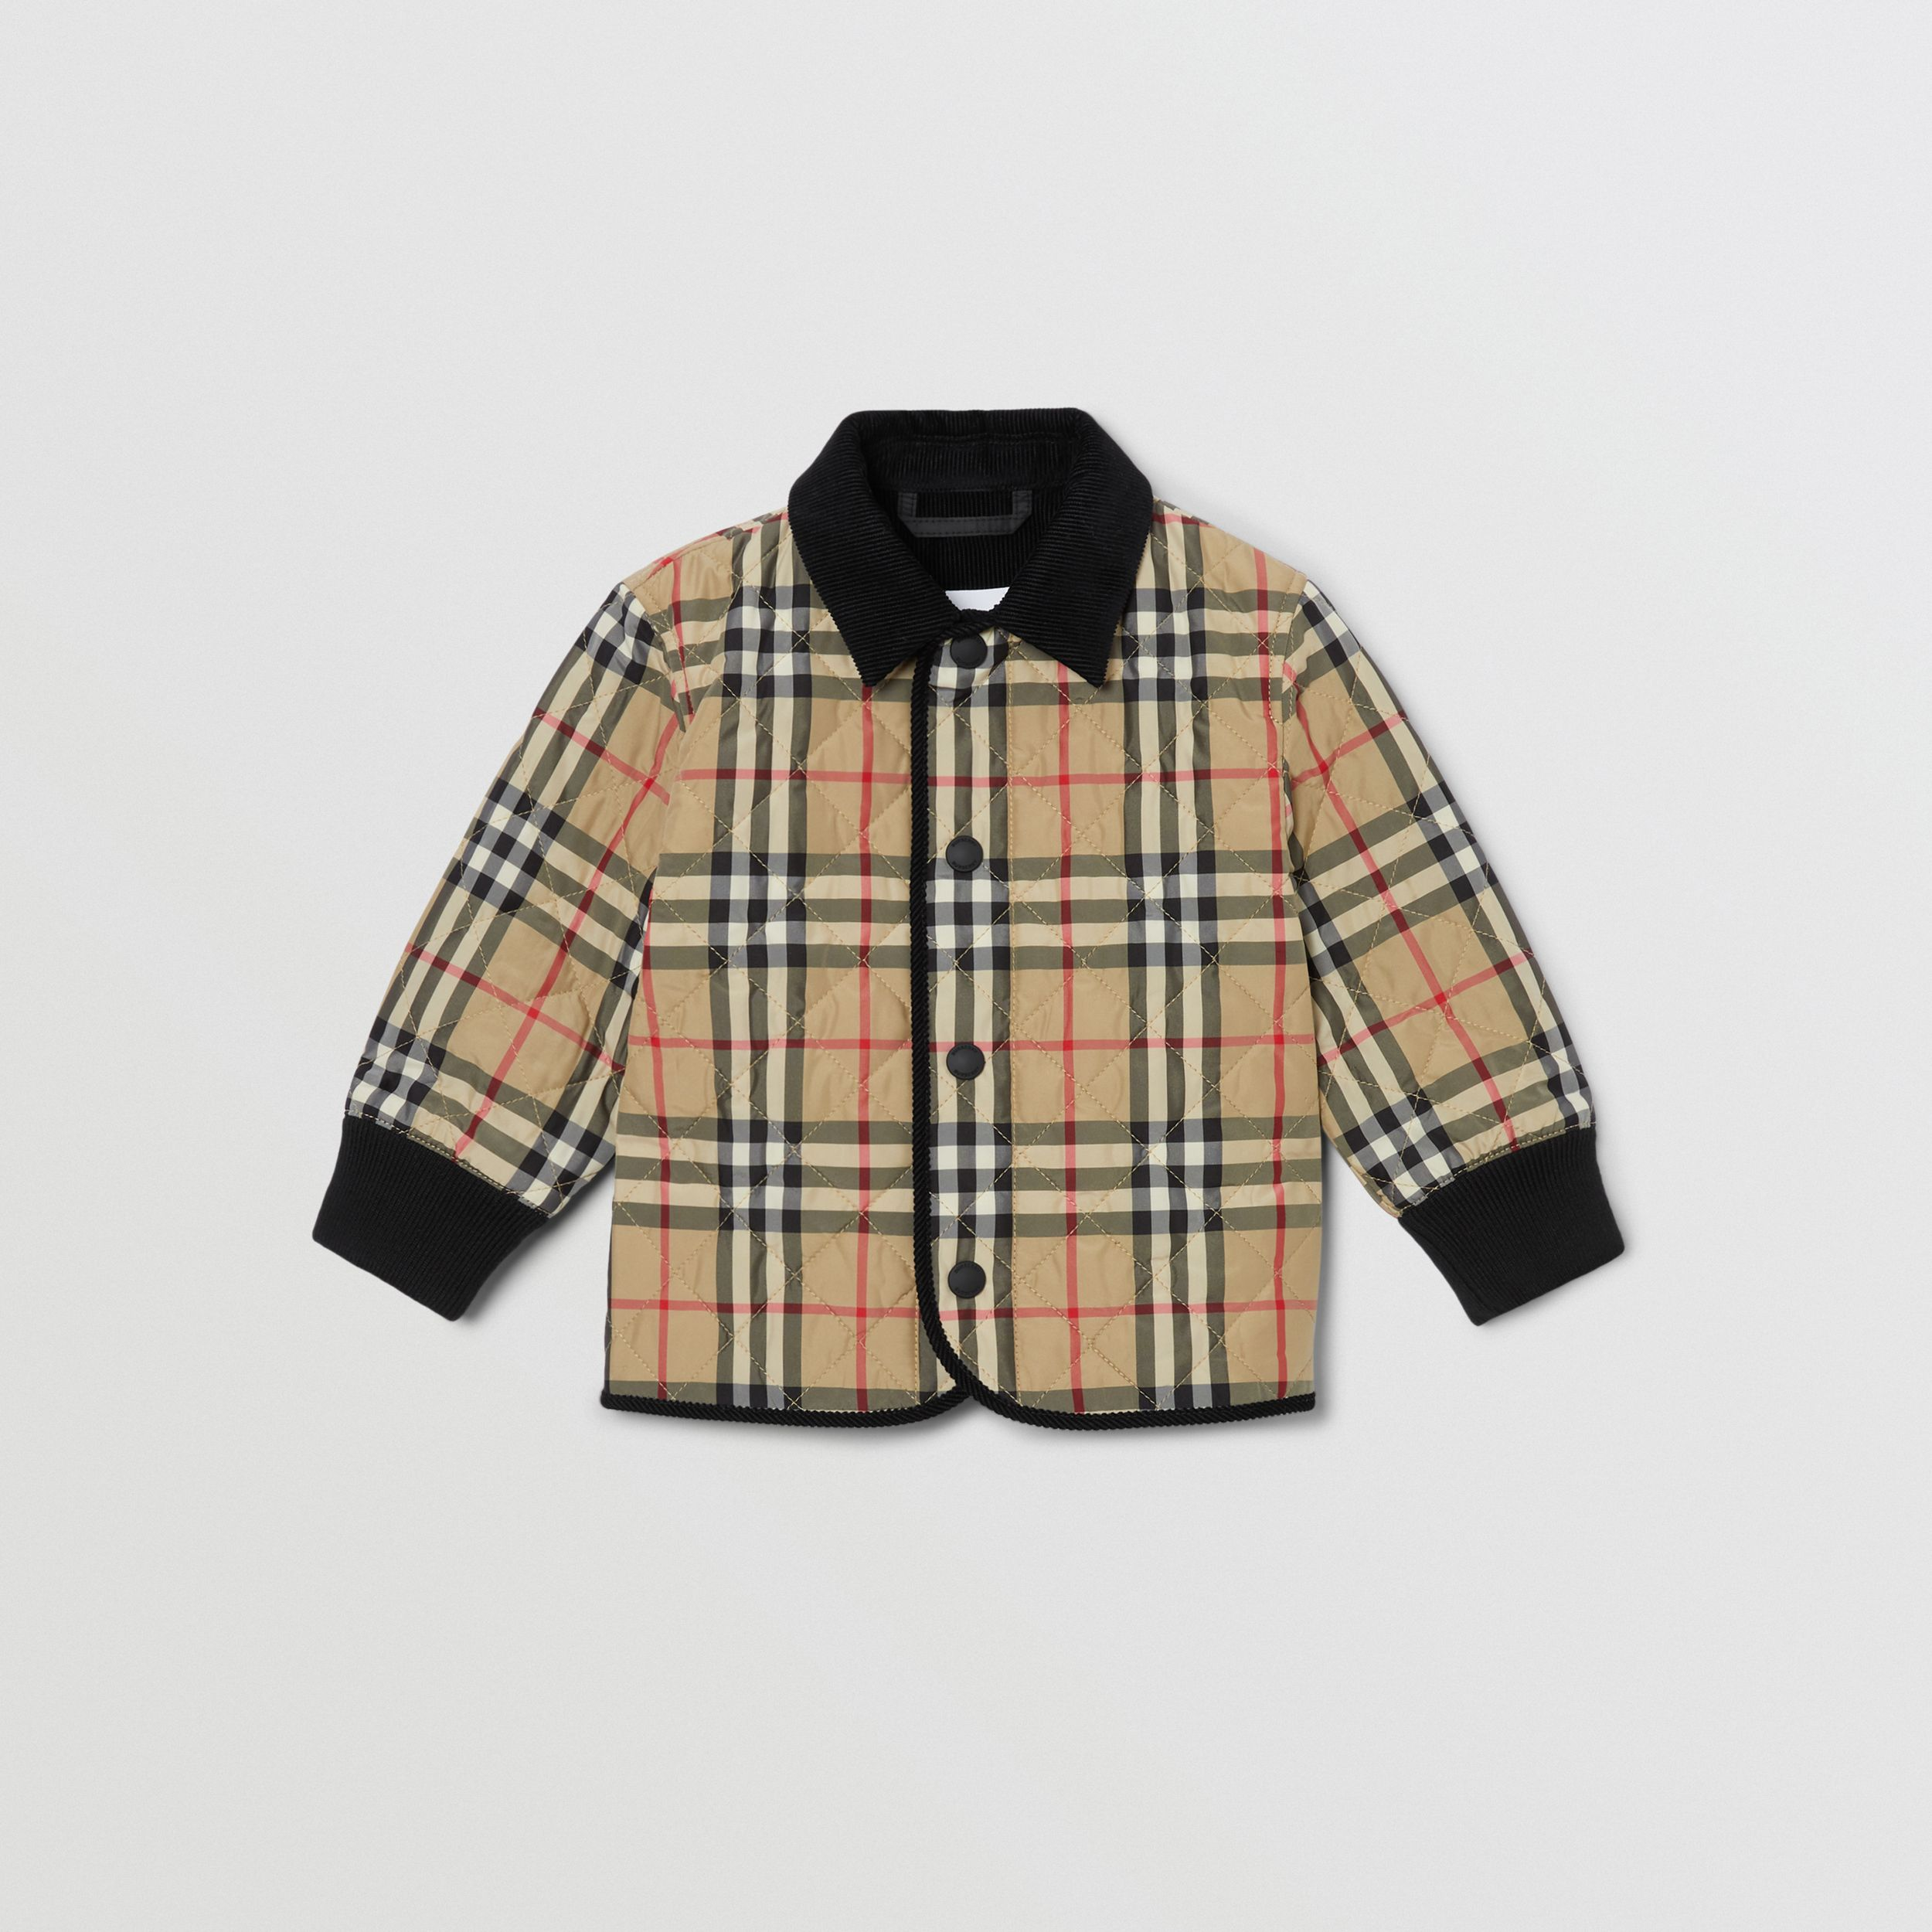 Corduroy Trim Vintage Check Diamond Quilted Jacket in Archive Beige - Children | Burberry - 1